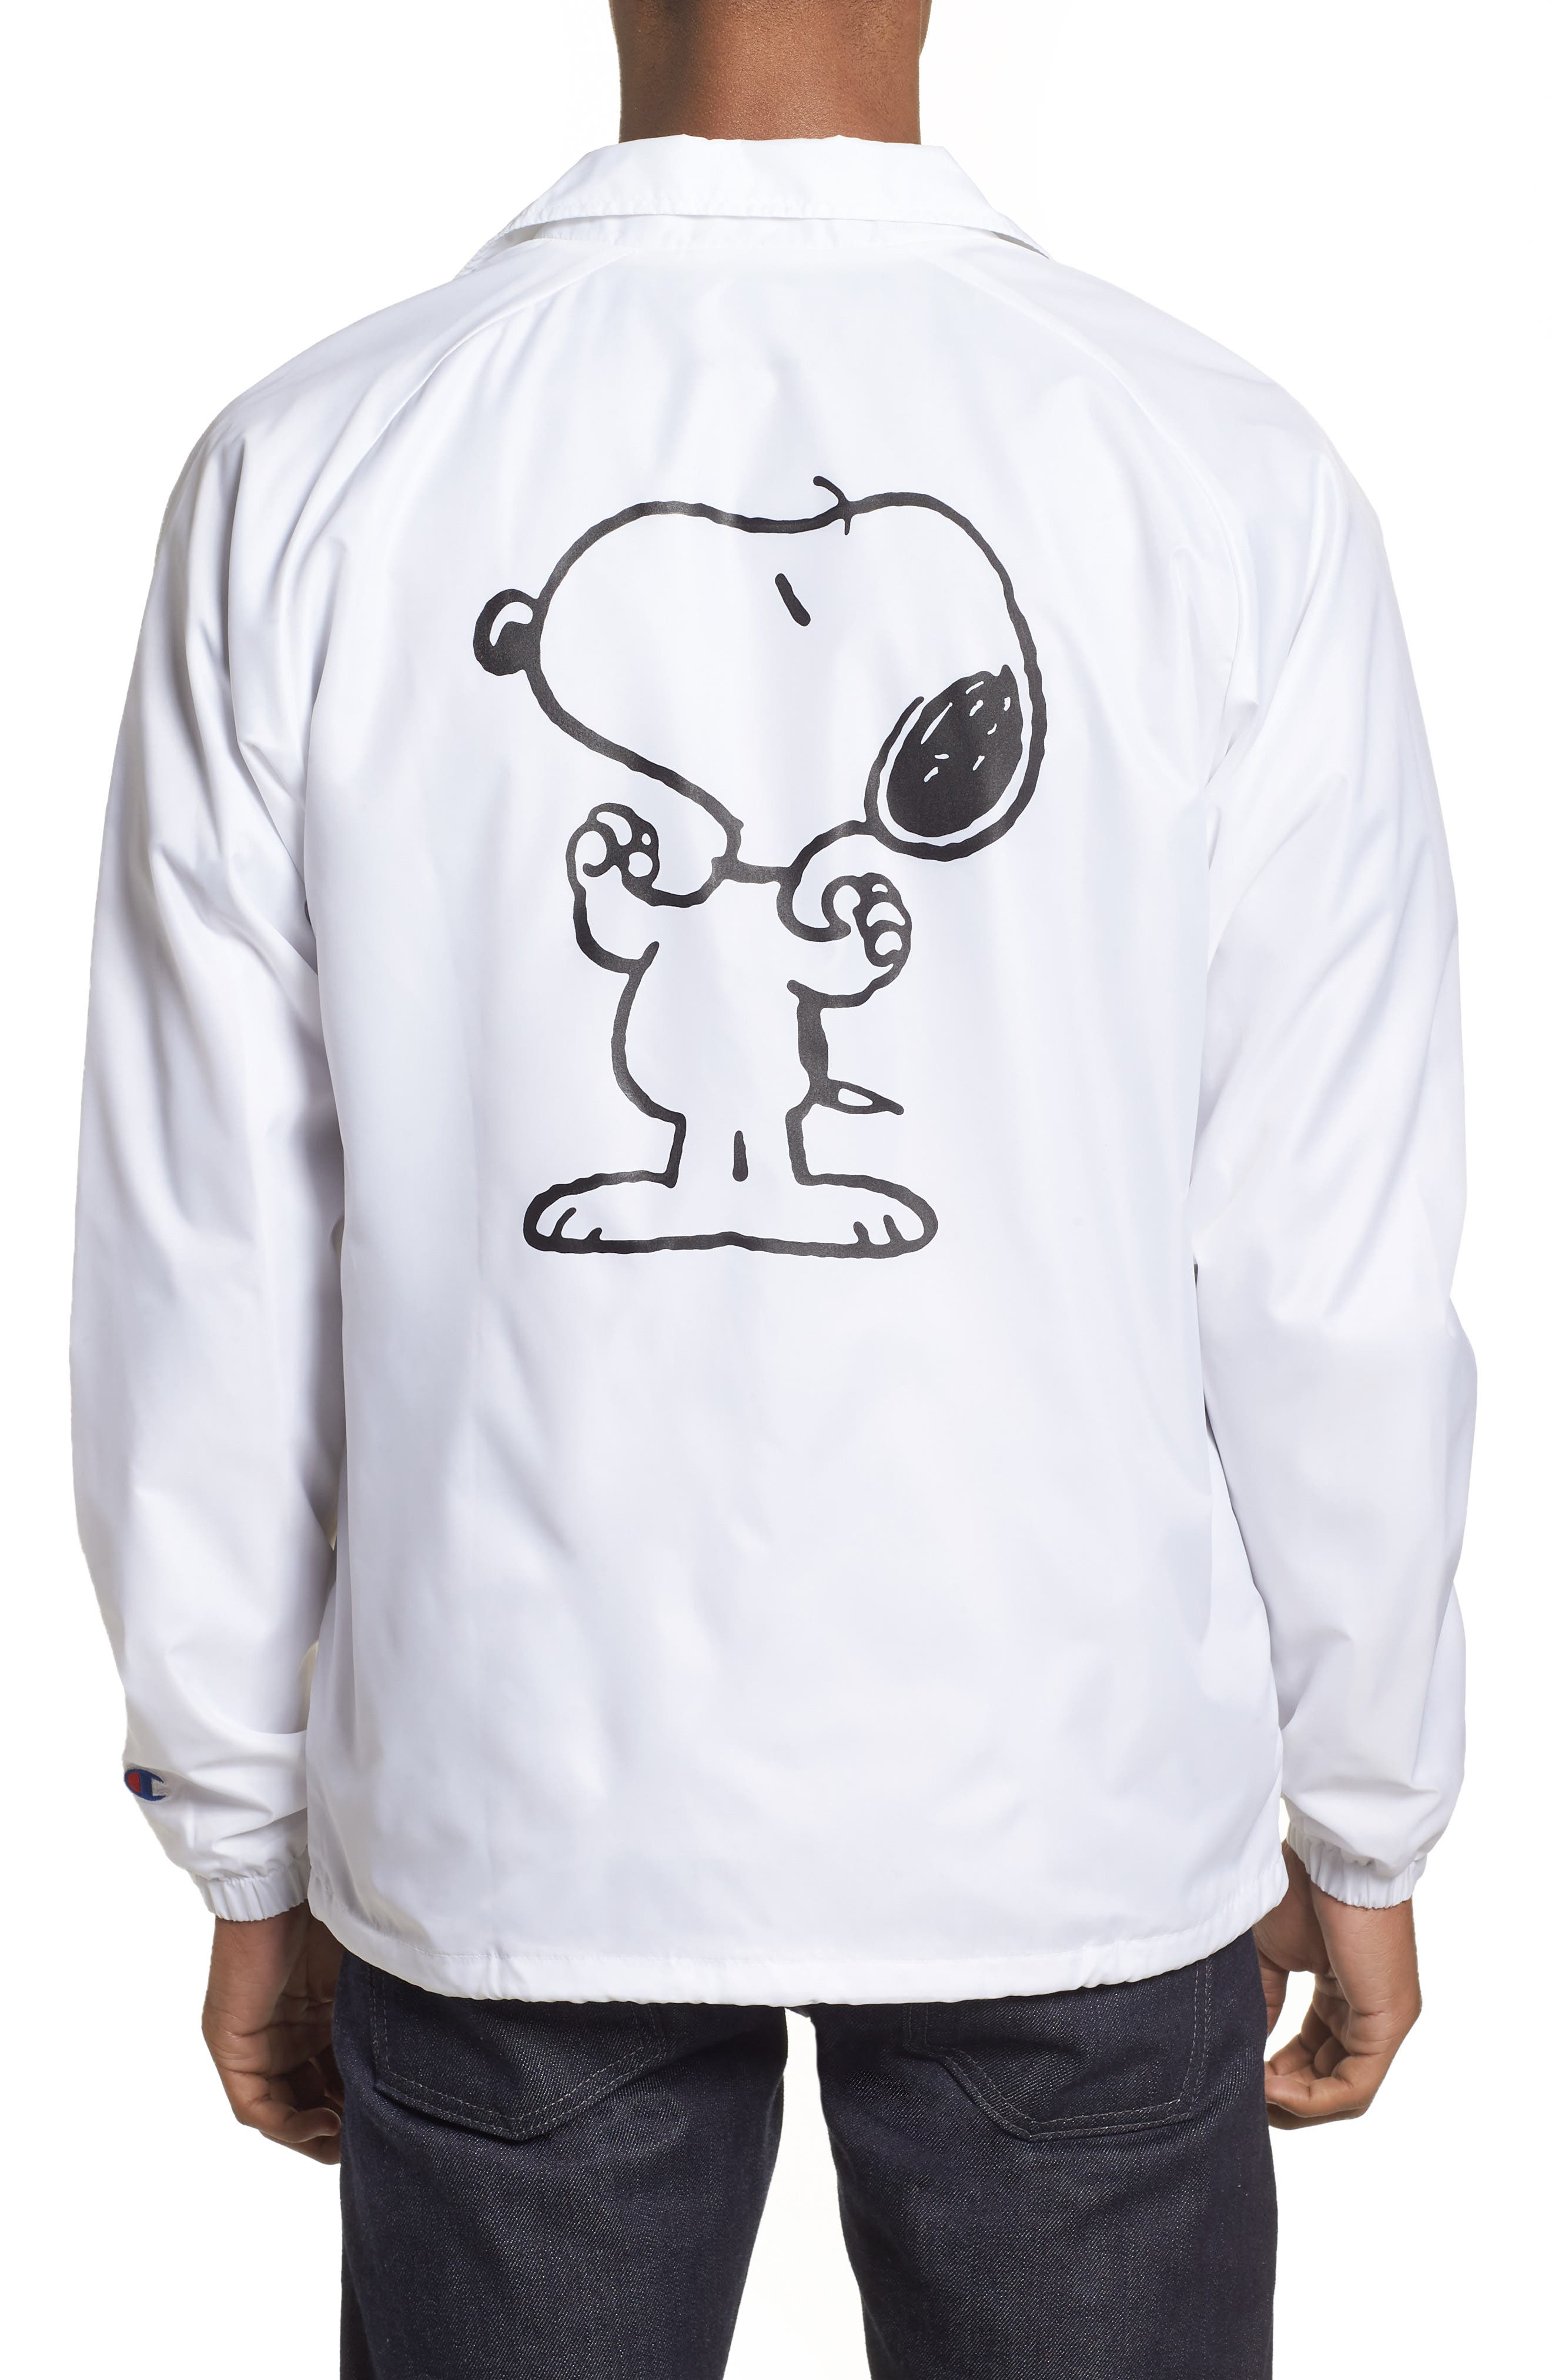 Snoopy Unisex Coach's Jacket,                             Alternate thumbnail 2, color,                             WHITE